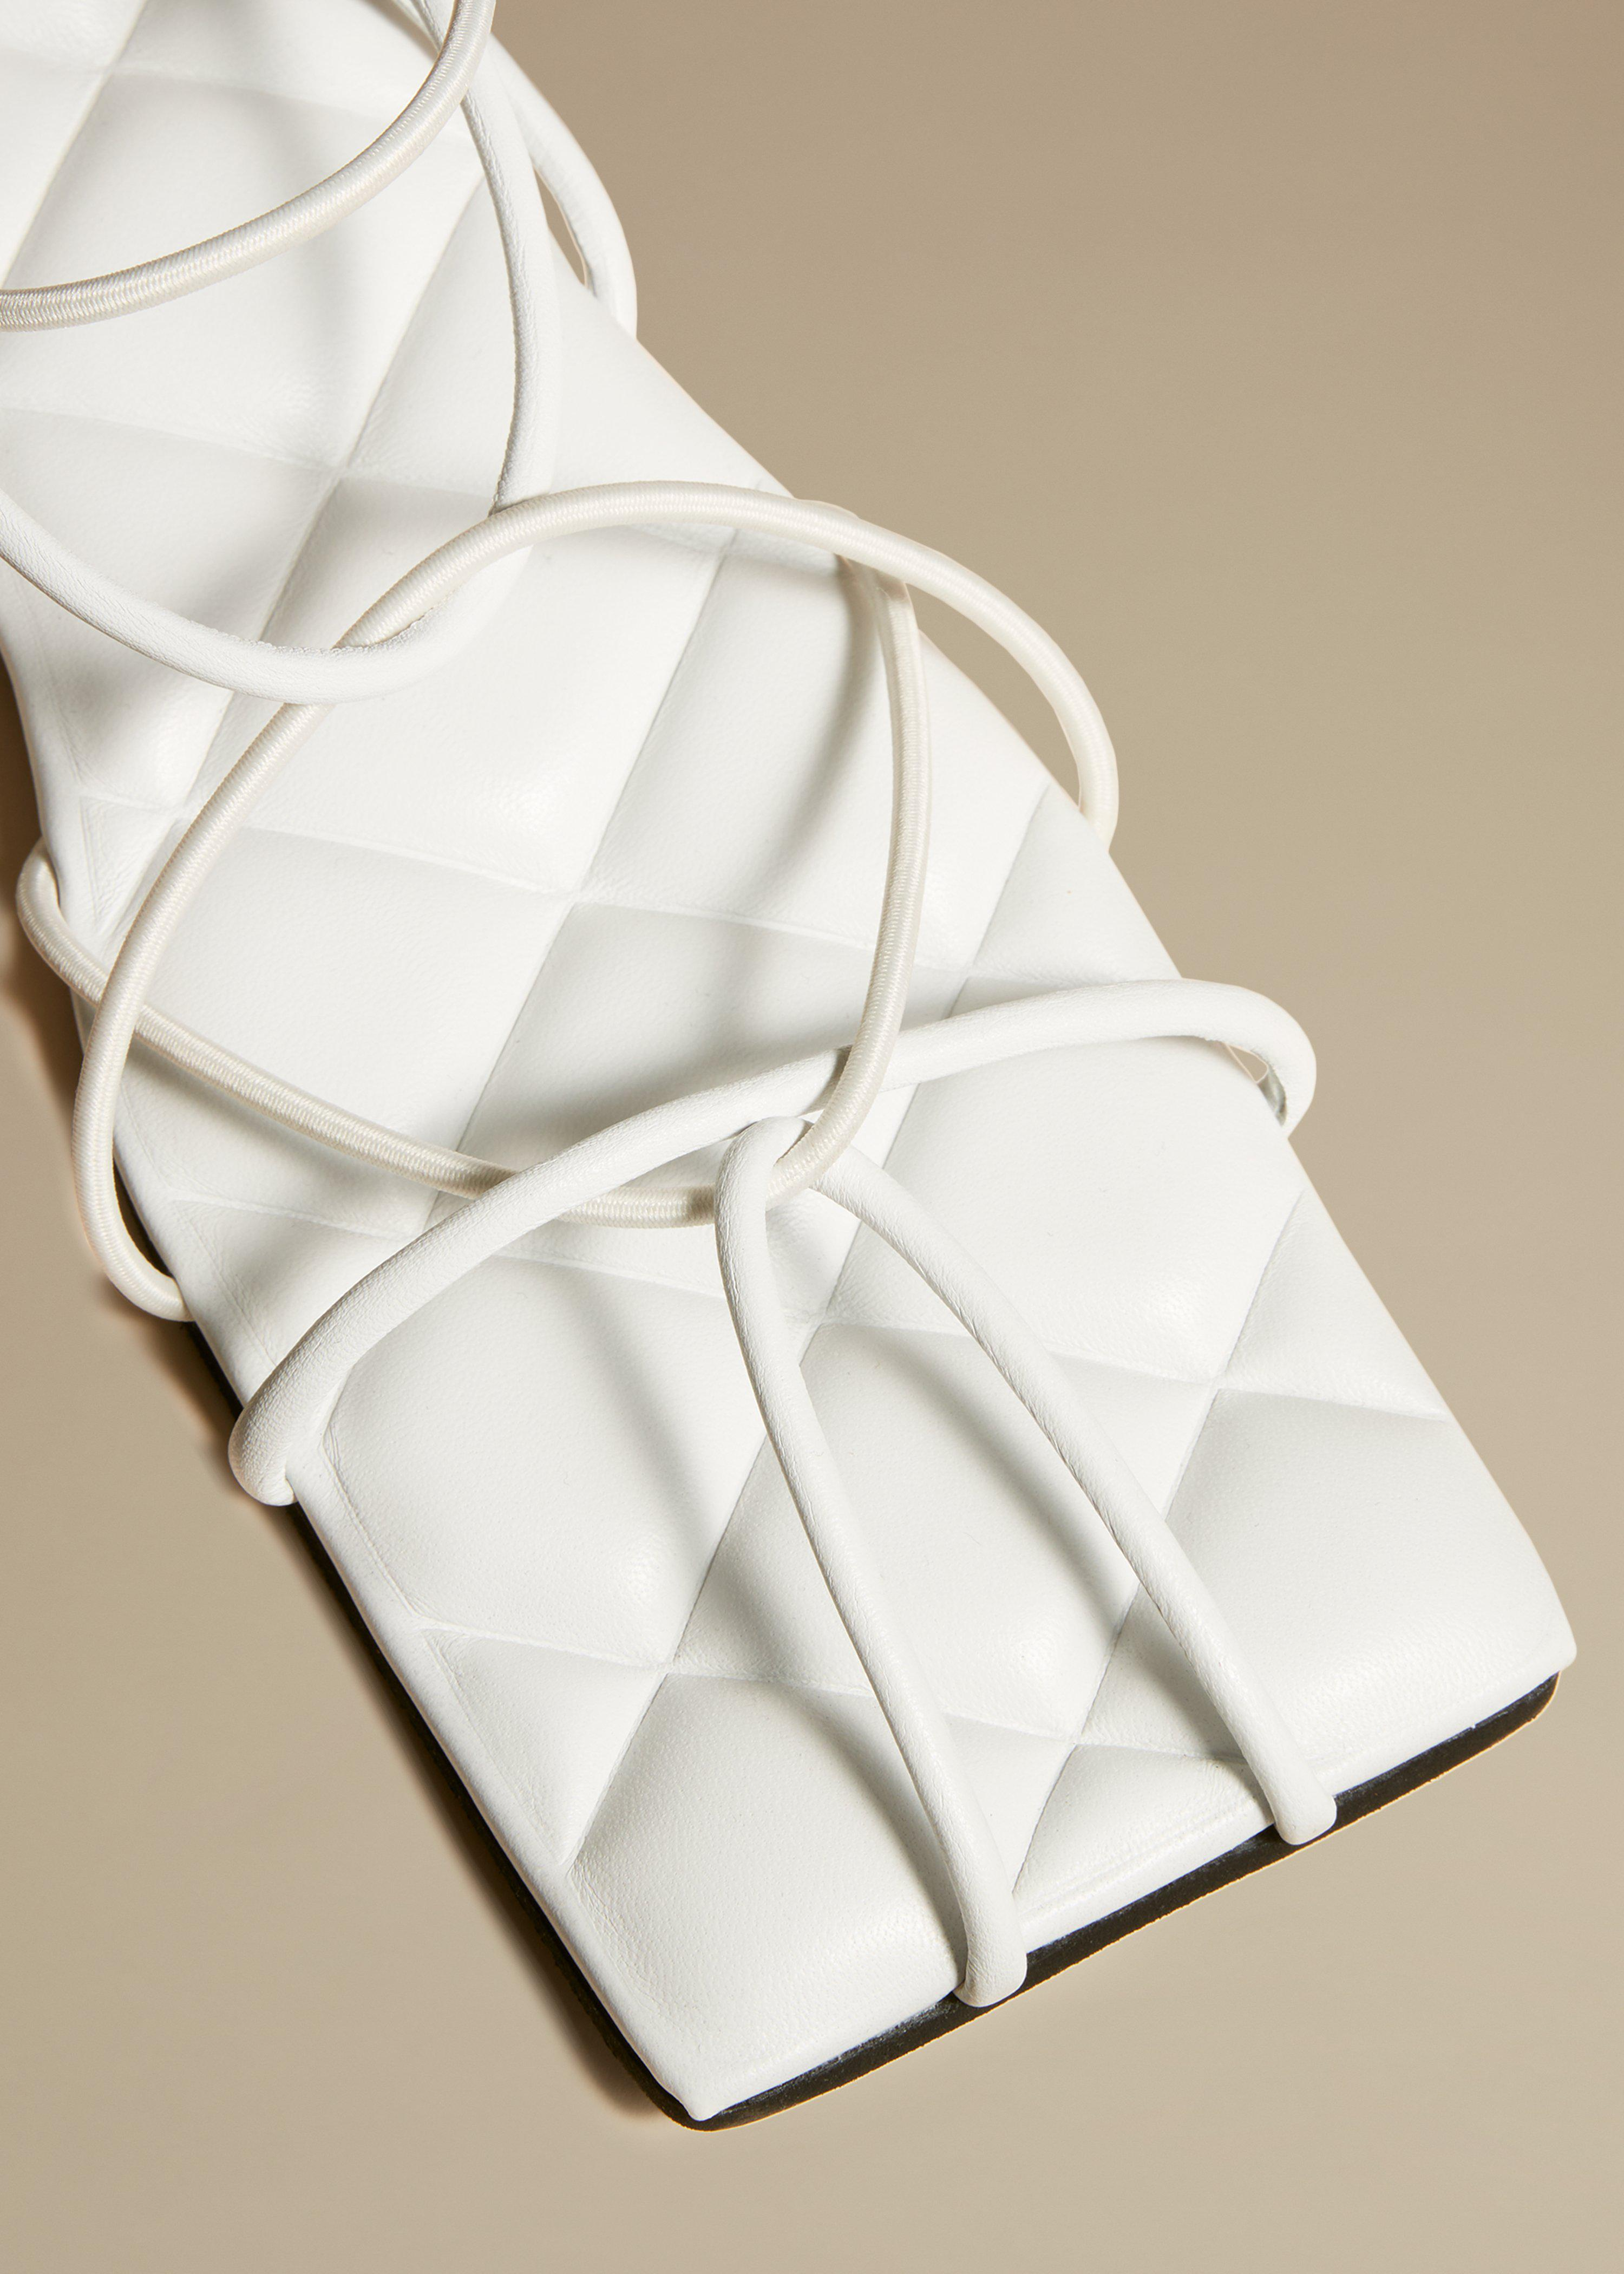 The Patras Sandal in White Leather 2